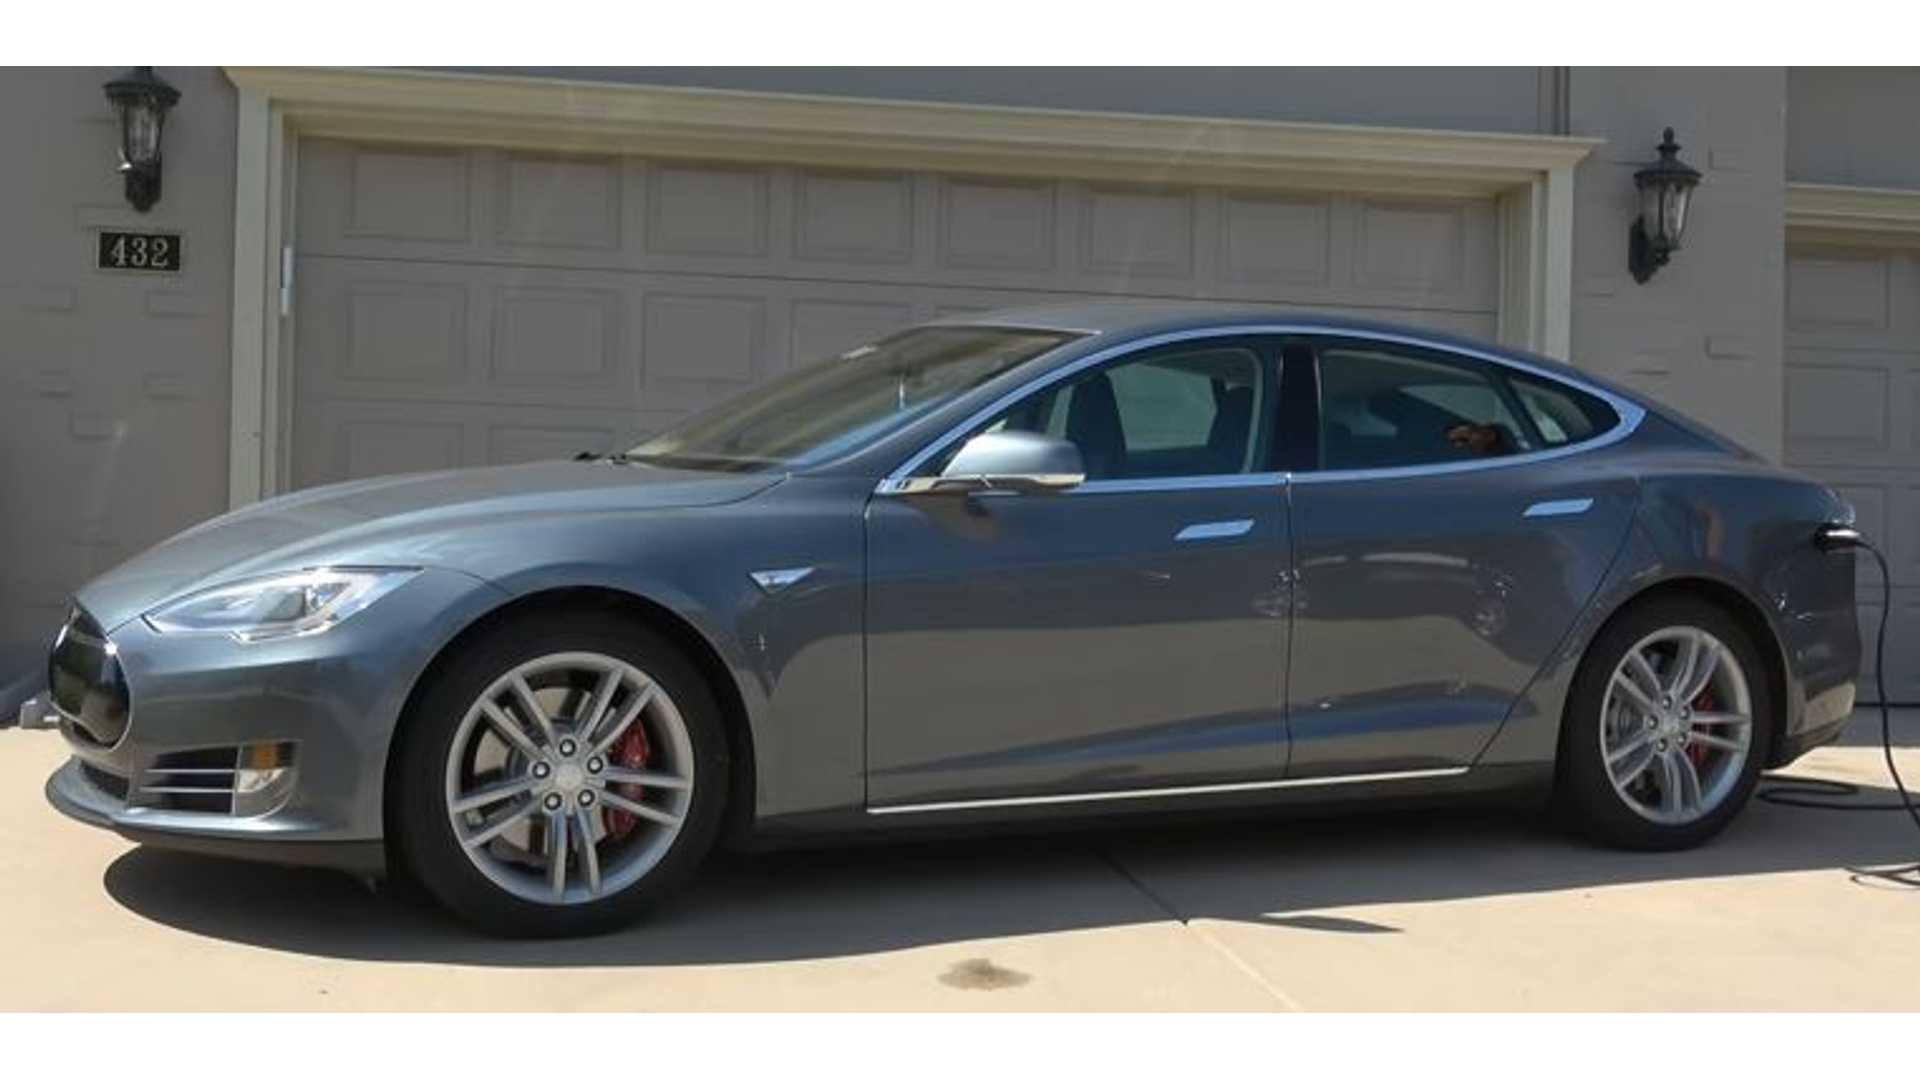 Save Big Money Buying A Used, Out-Of-Warranty Tesla? Think Again